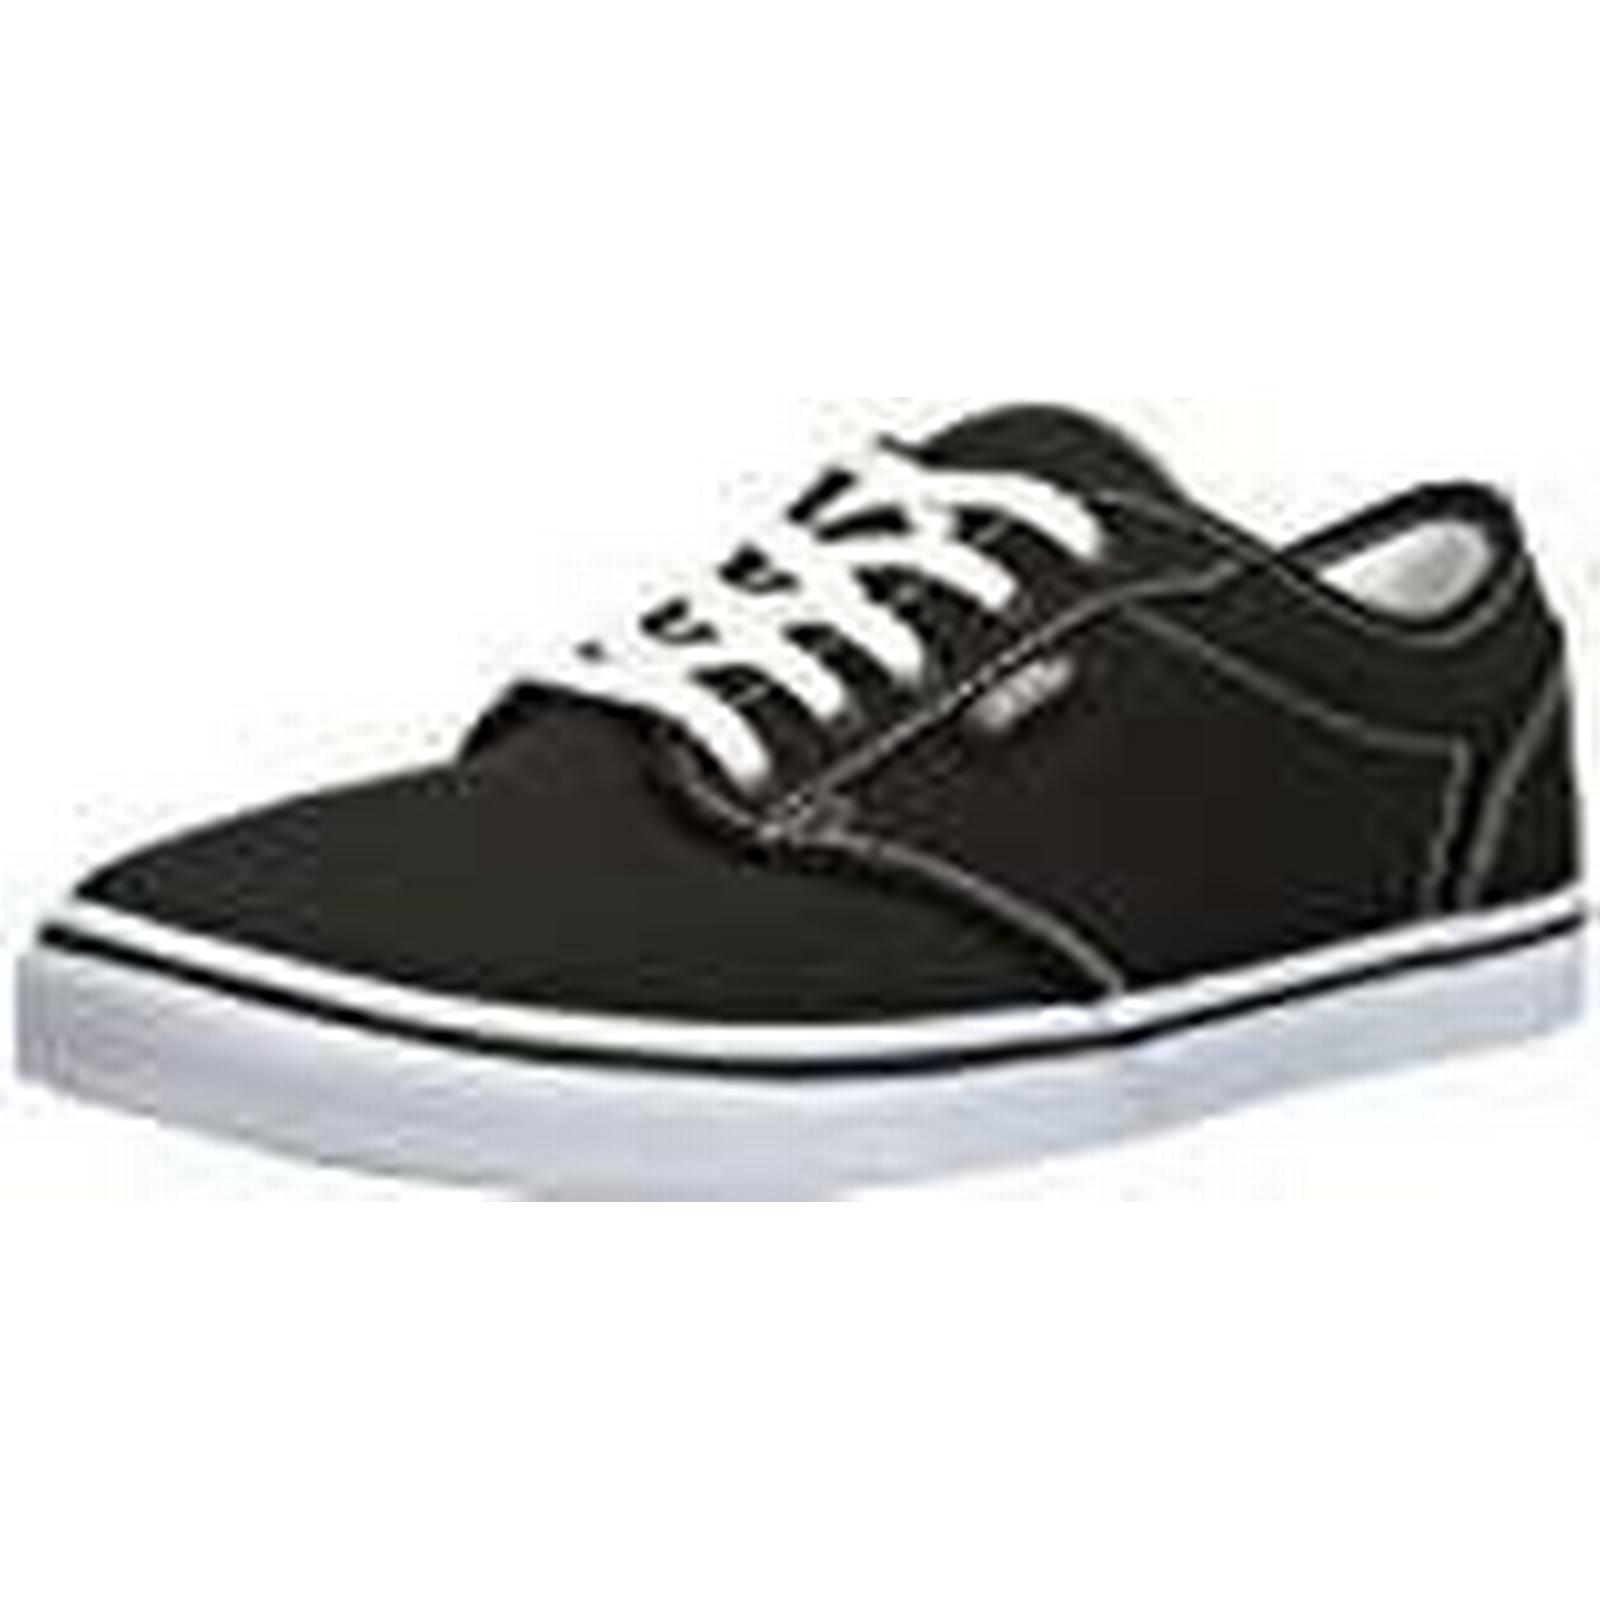 98f70c2da9 Trainers Top Trainers Low Skate Valcanised Women s Atwood Vans nSZ0wq4xWR